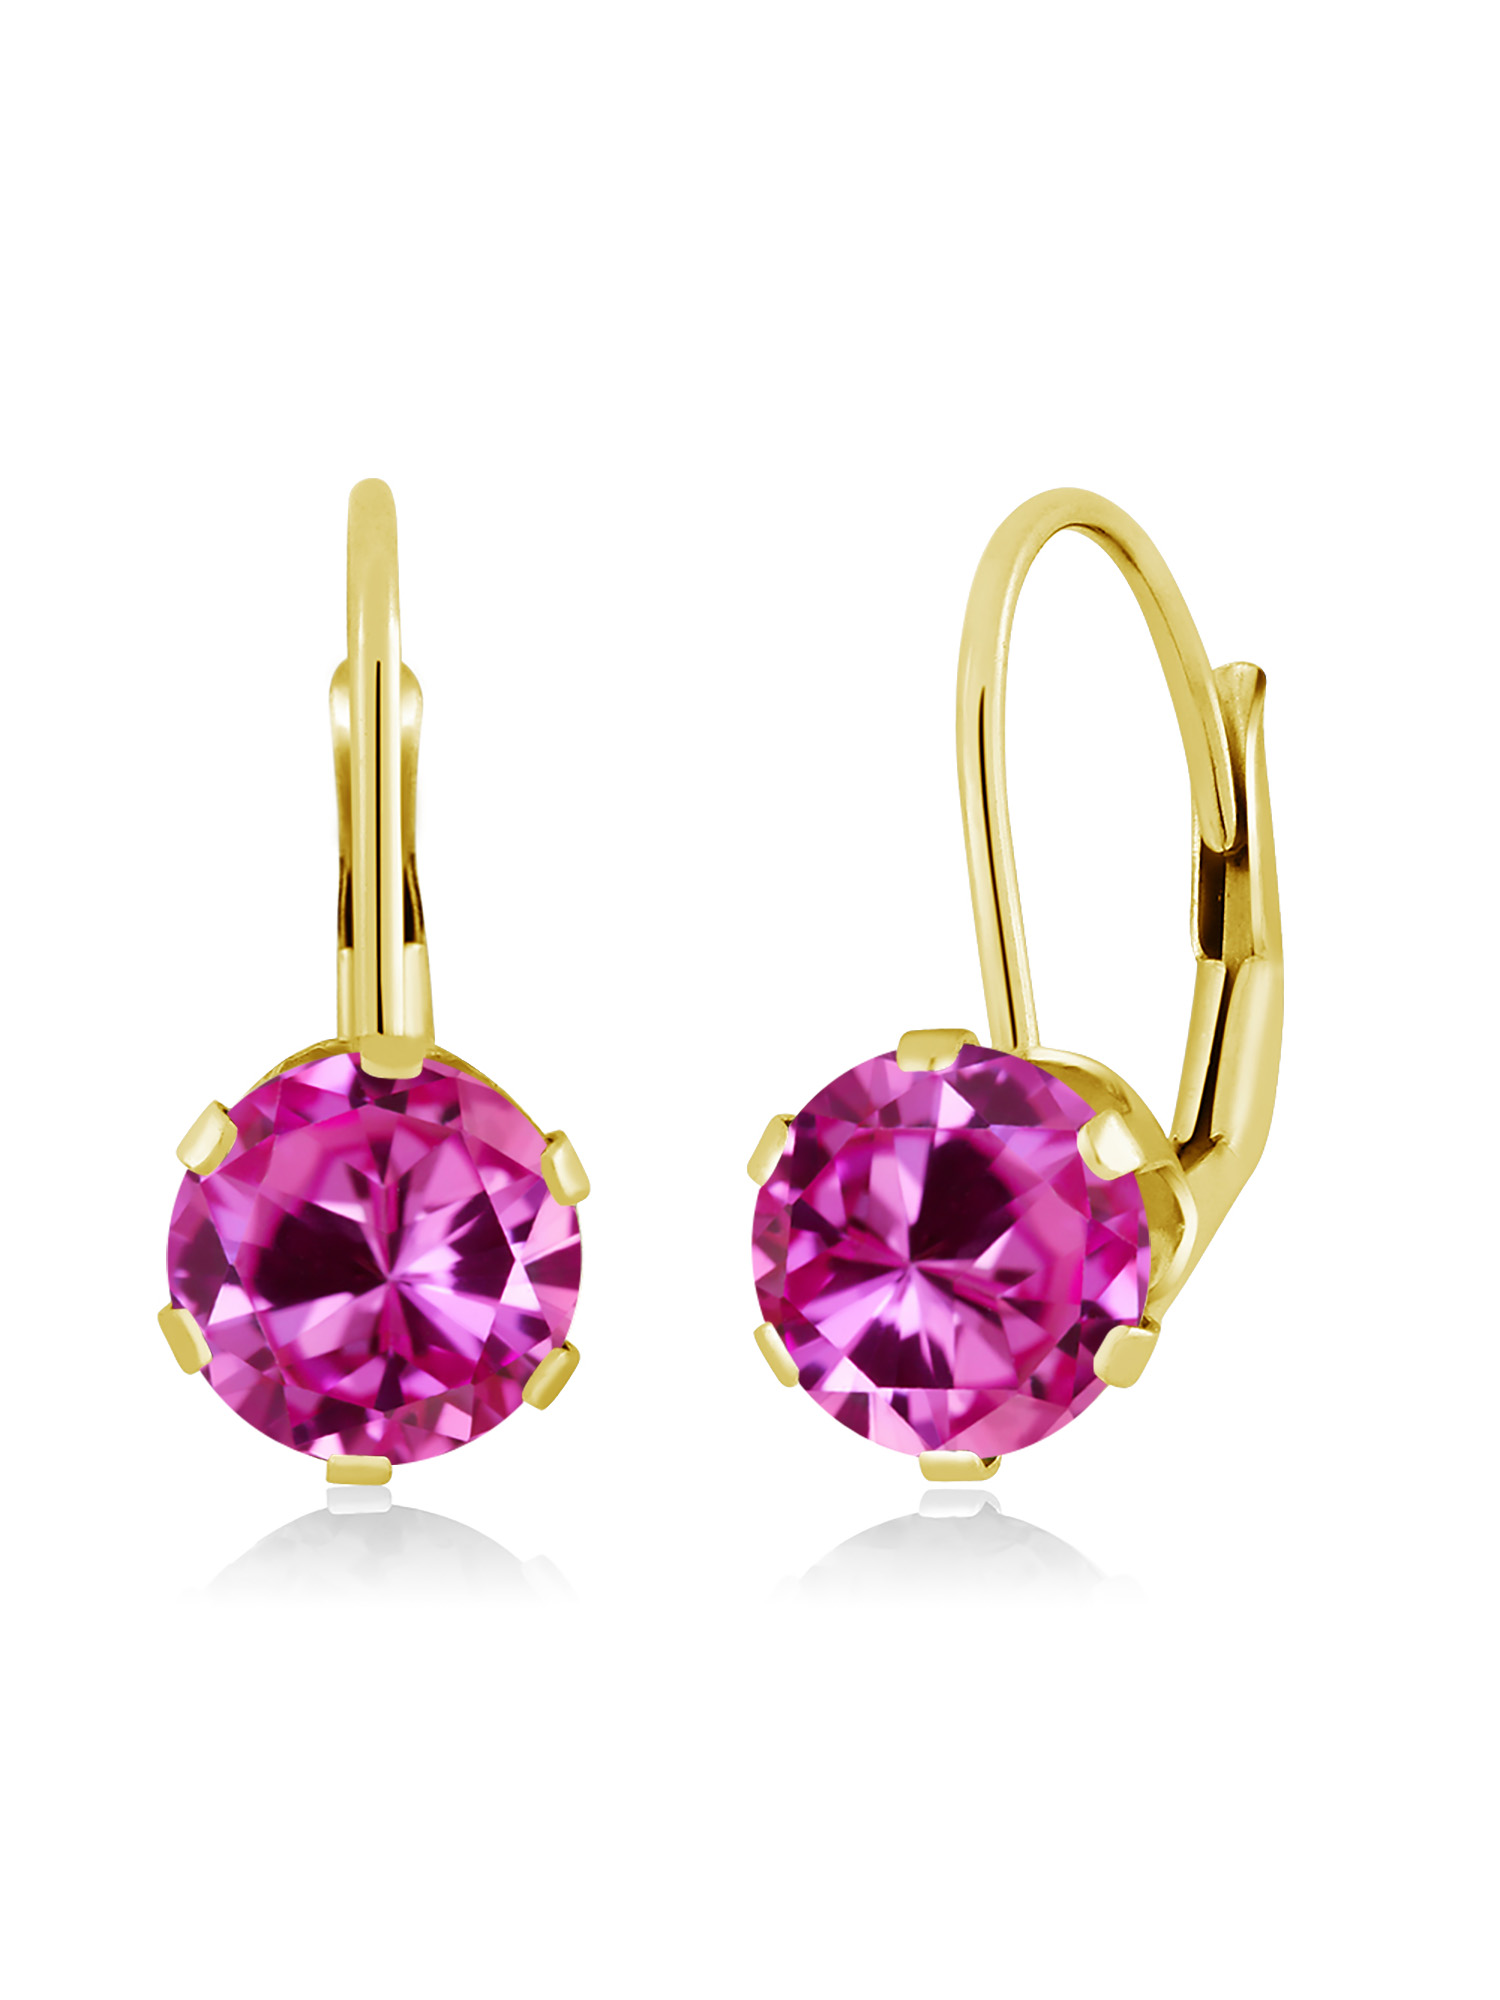 2.00 Ct Round Pink Created Sapphire 14K Yellow Gold Earrings by